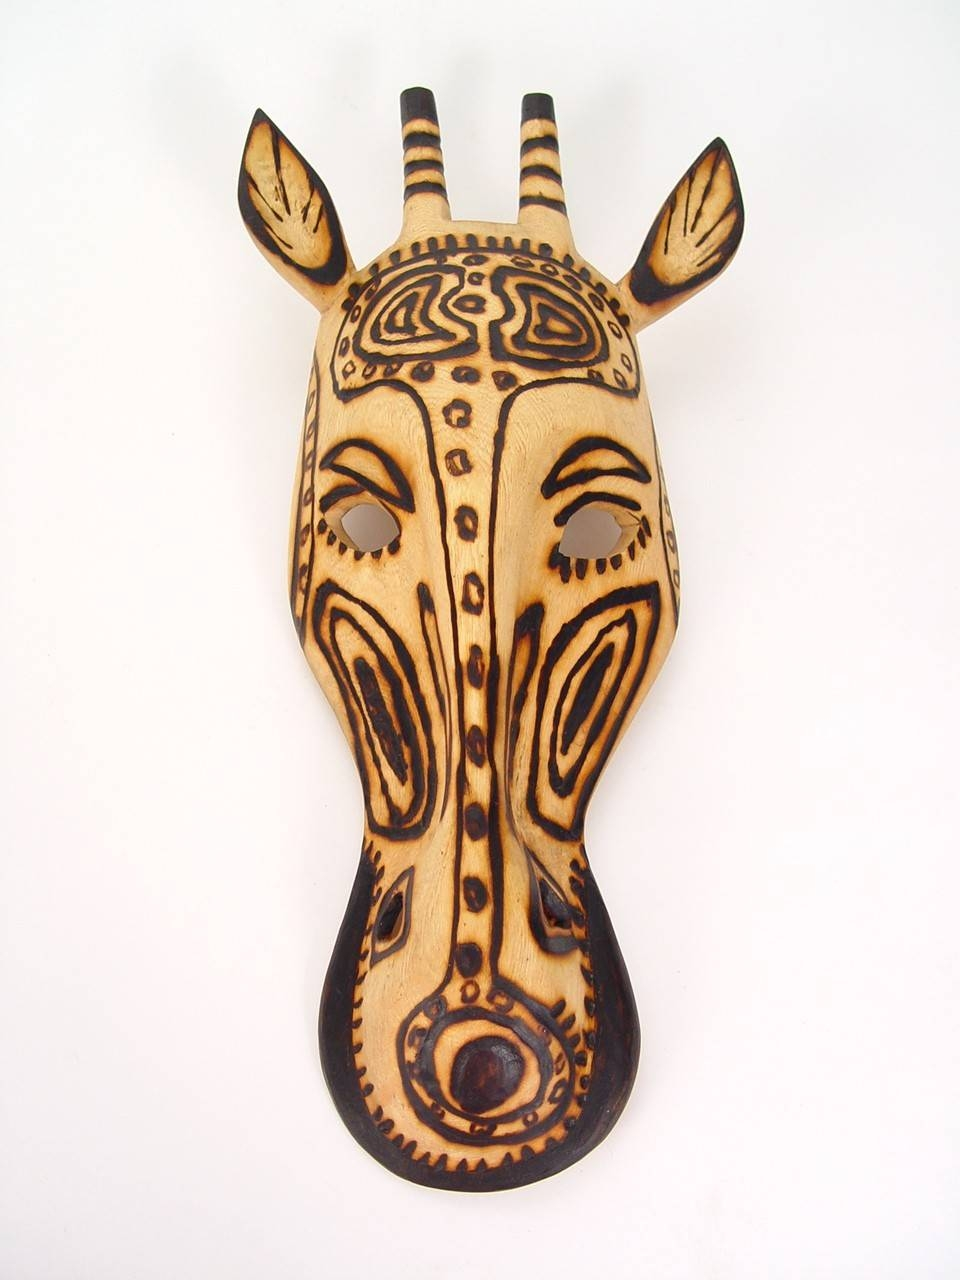 Handmade Wall Masks| Metal Wall Art | Wooden Giraffe Mask For Current Giraffe Metal Wall Art (View 11 of 20)